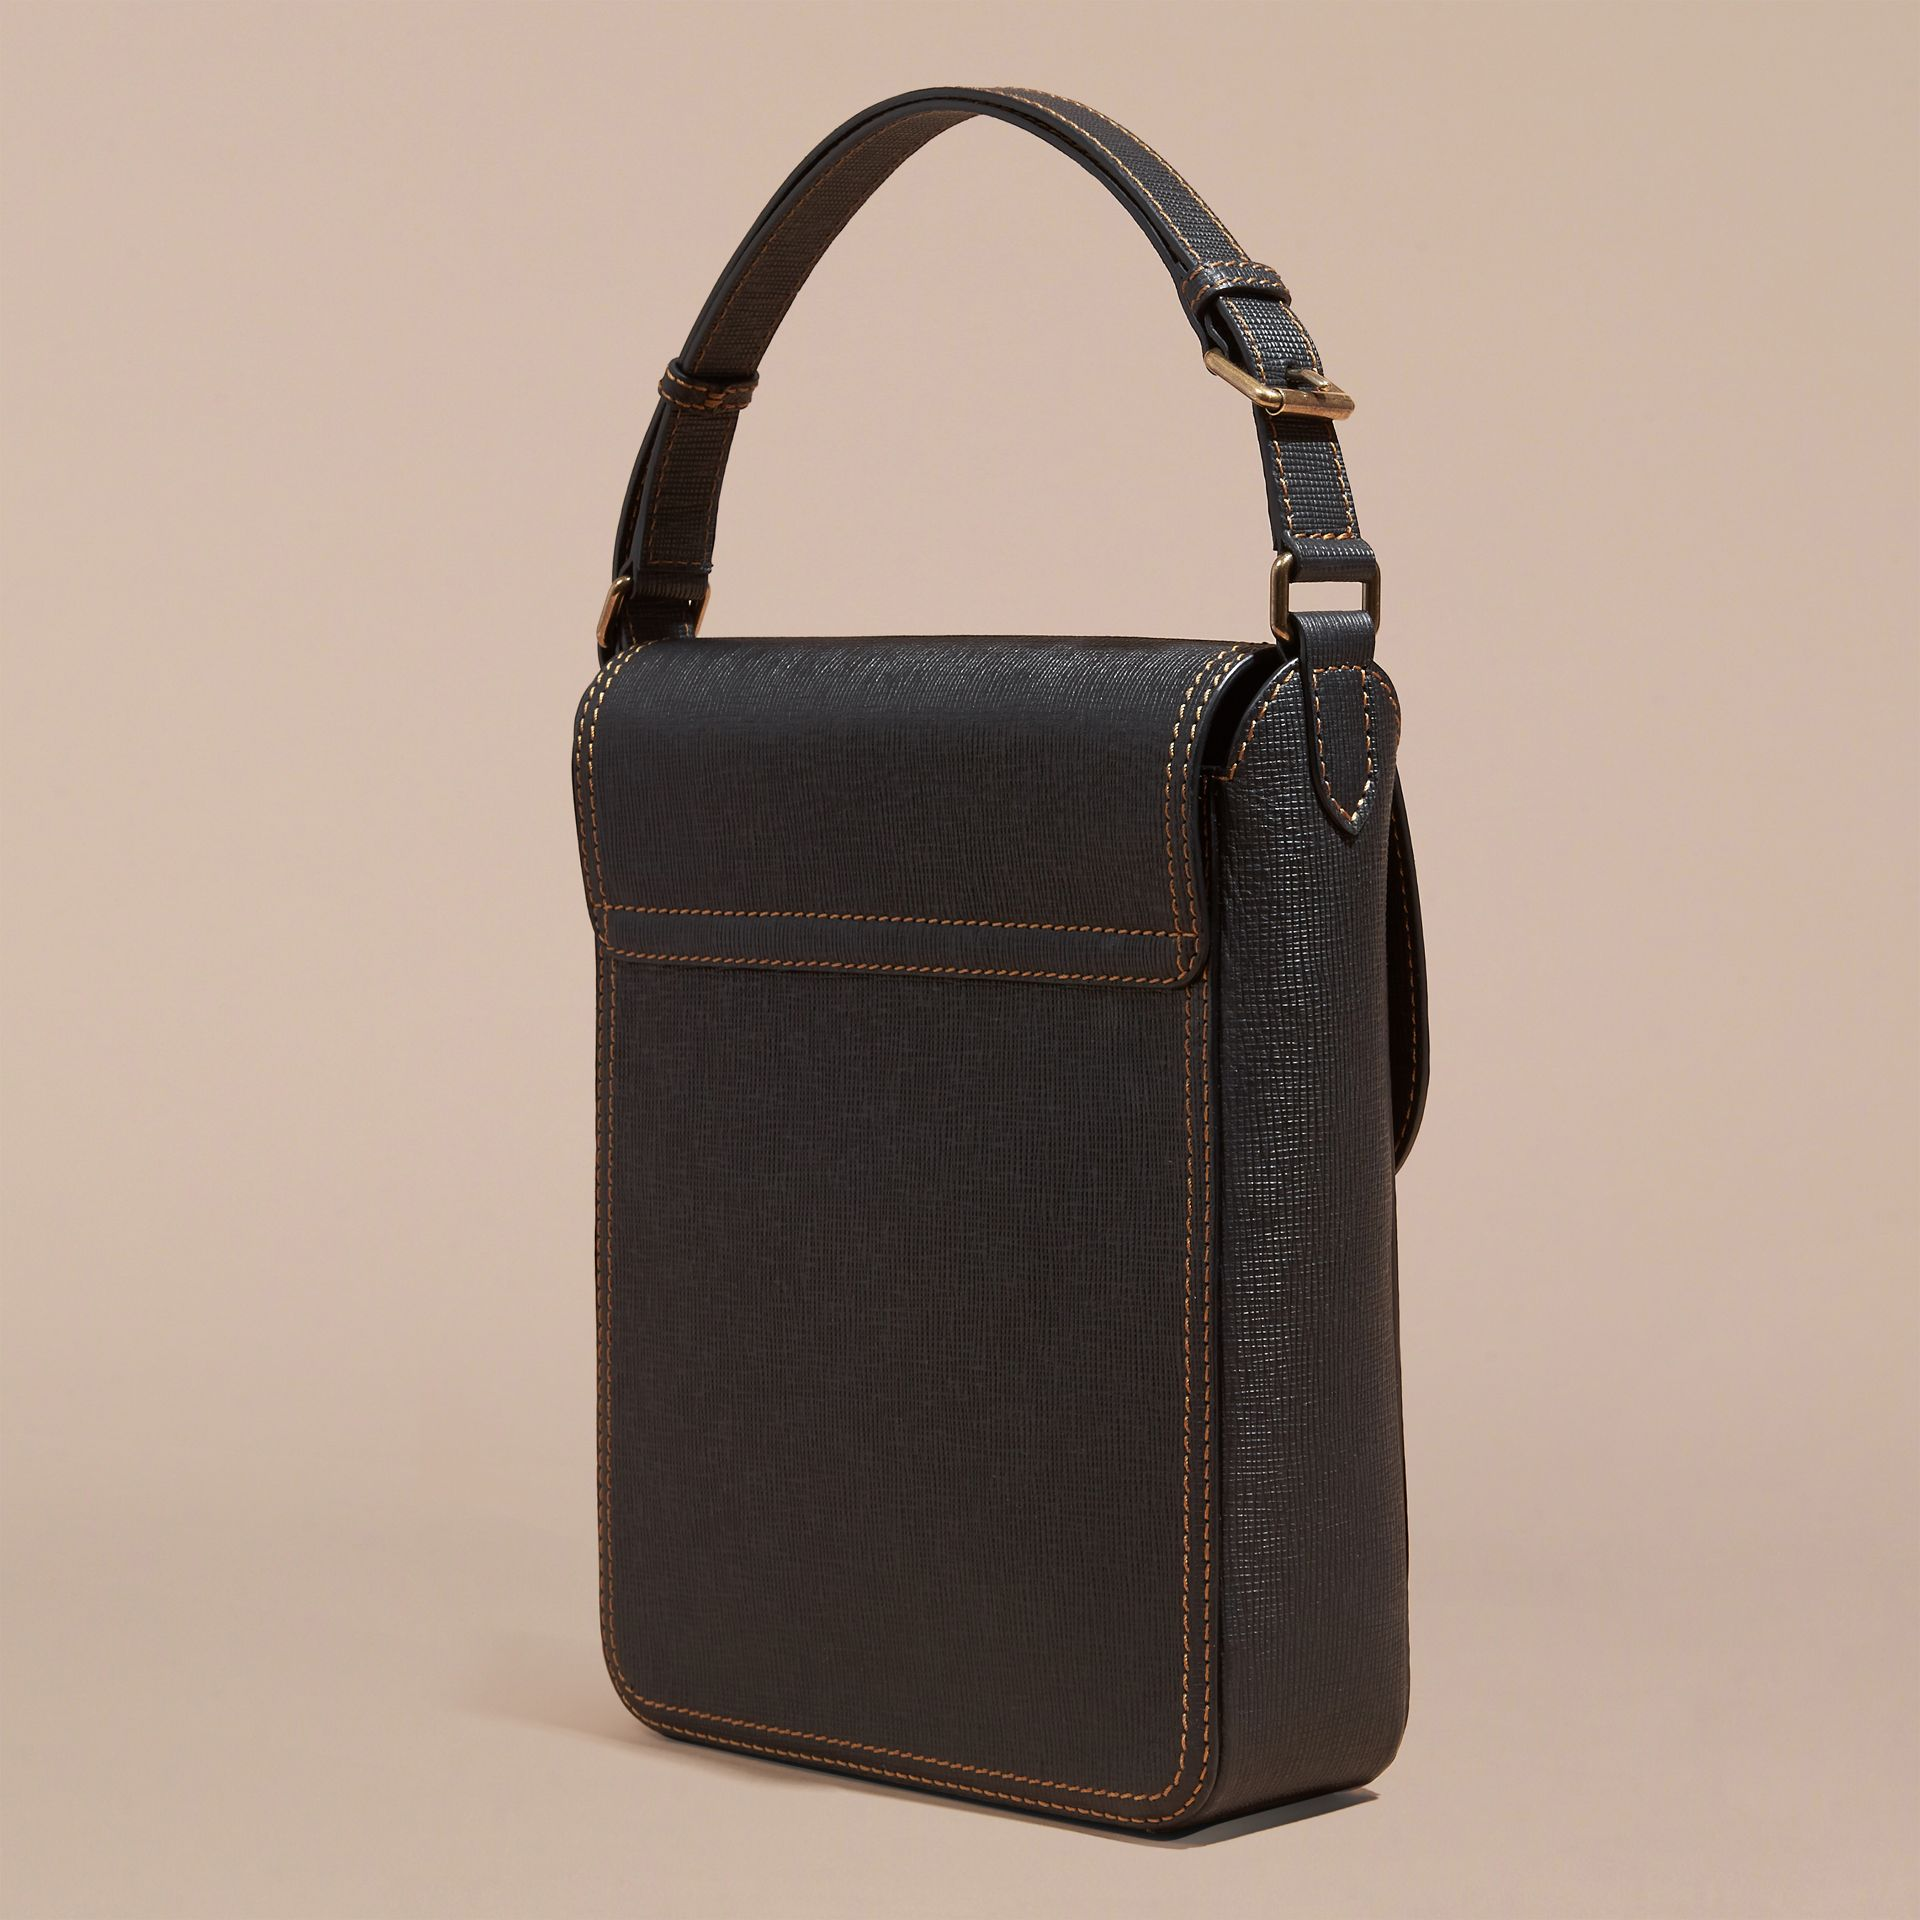 Black The Medium Satchel in Textured Leather - gallery image 4